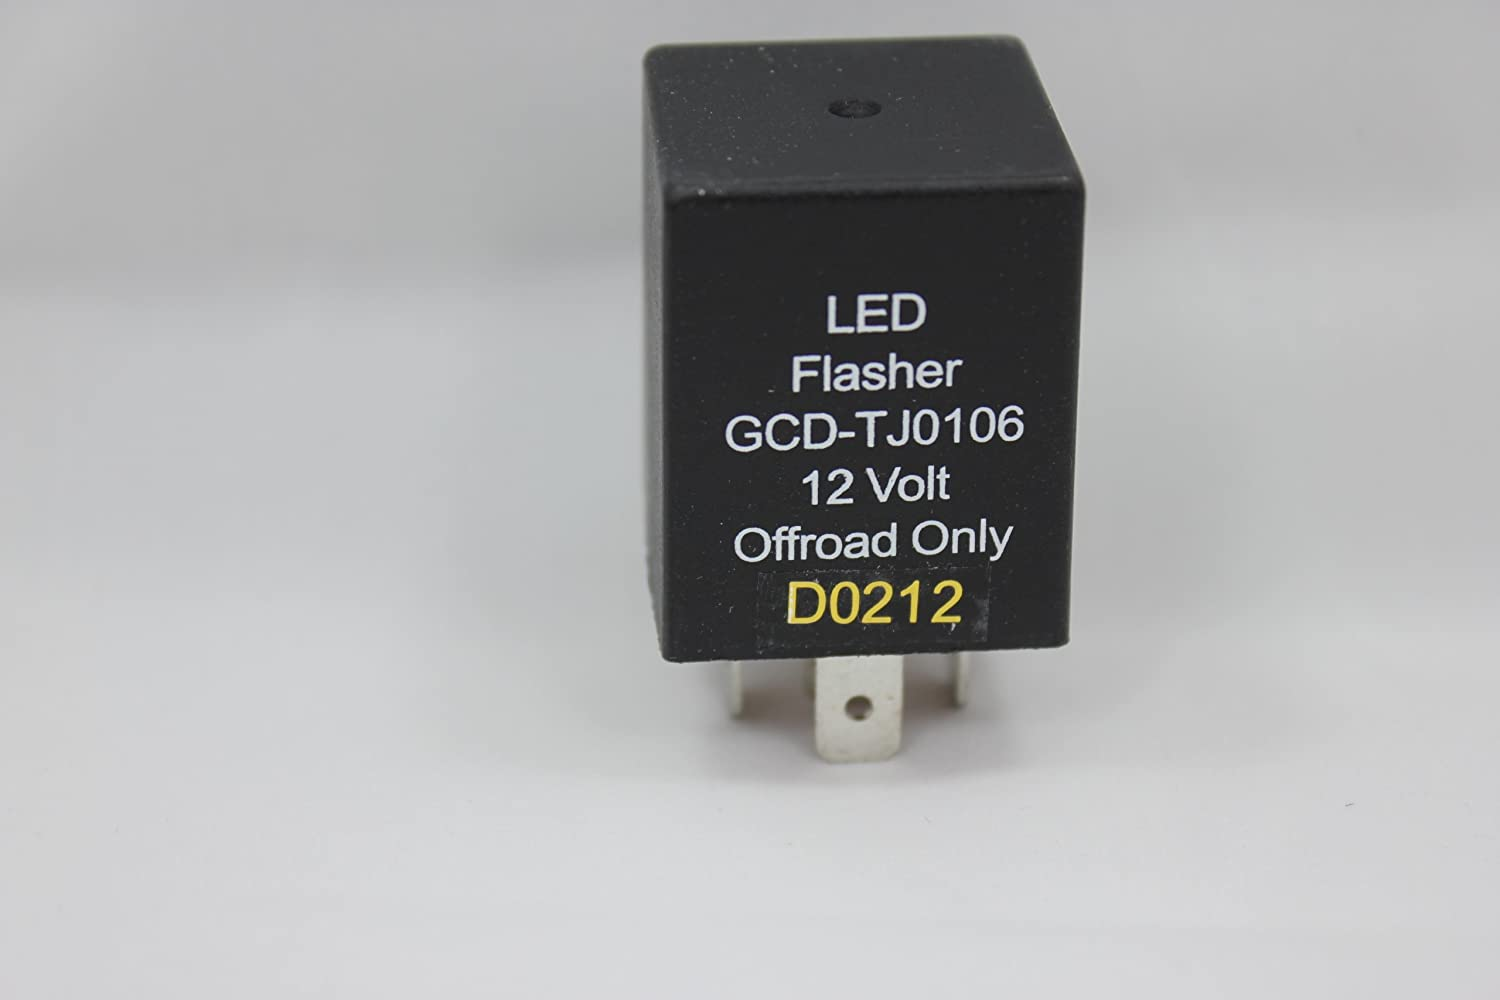 2005 JEEP TJ WRANGLER LED FLASHER RELAY FOR CHANGING TO LED TAIL LIGHTS GCD GCD-0106-LED